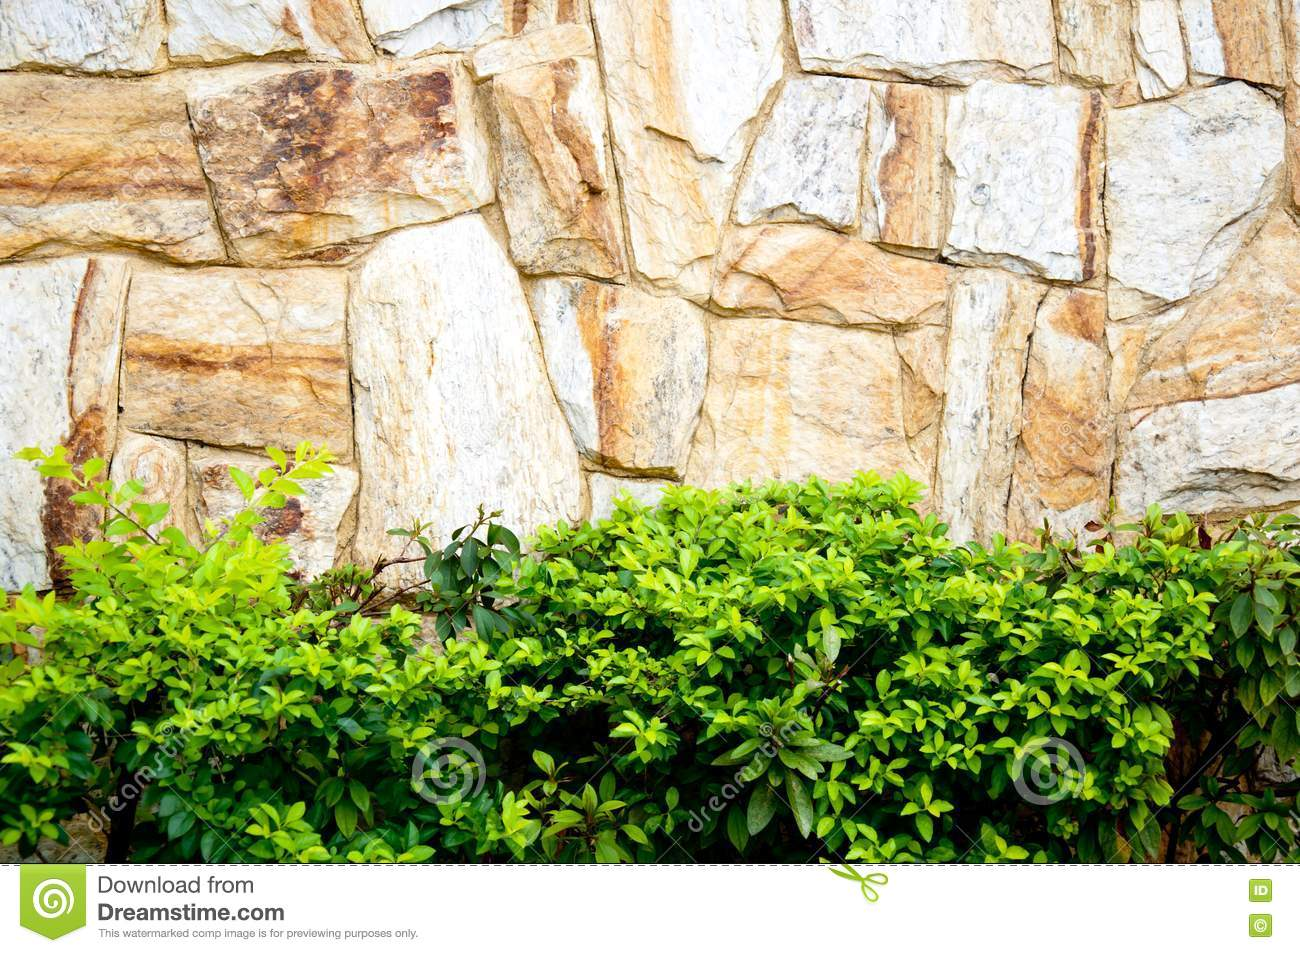 pared de piedra y plantas textured foto de archivo